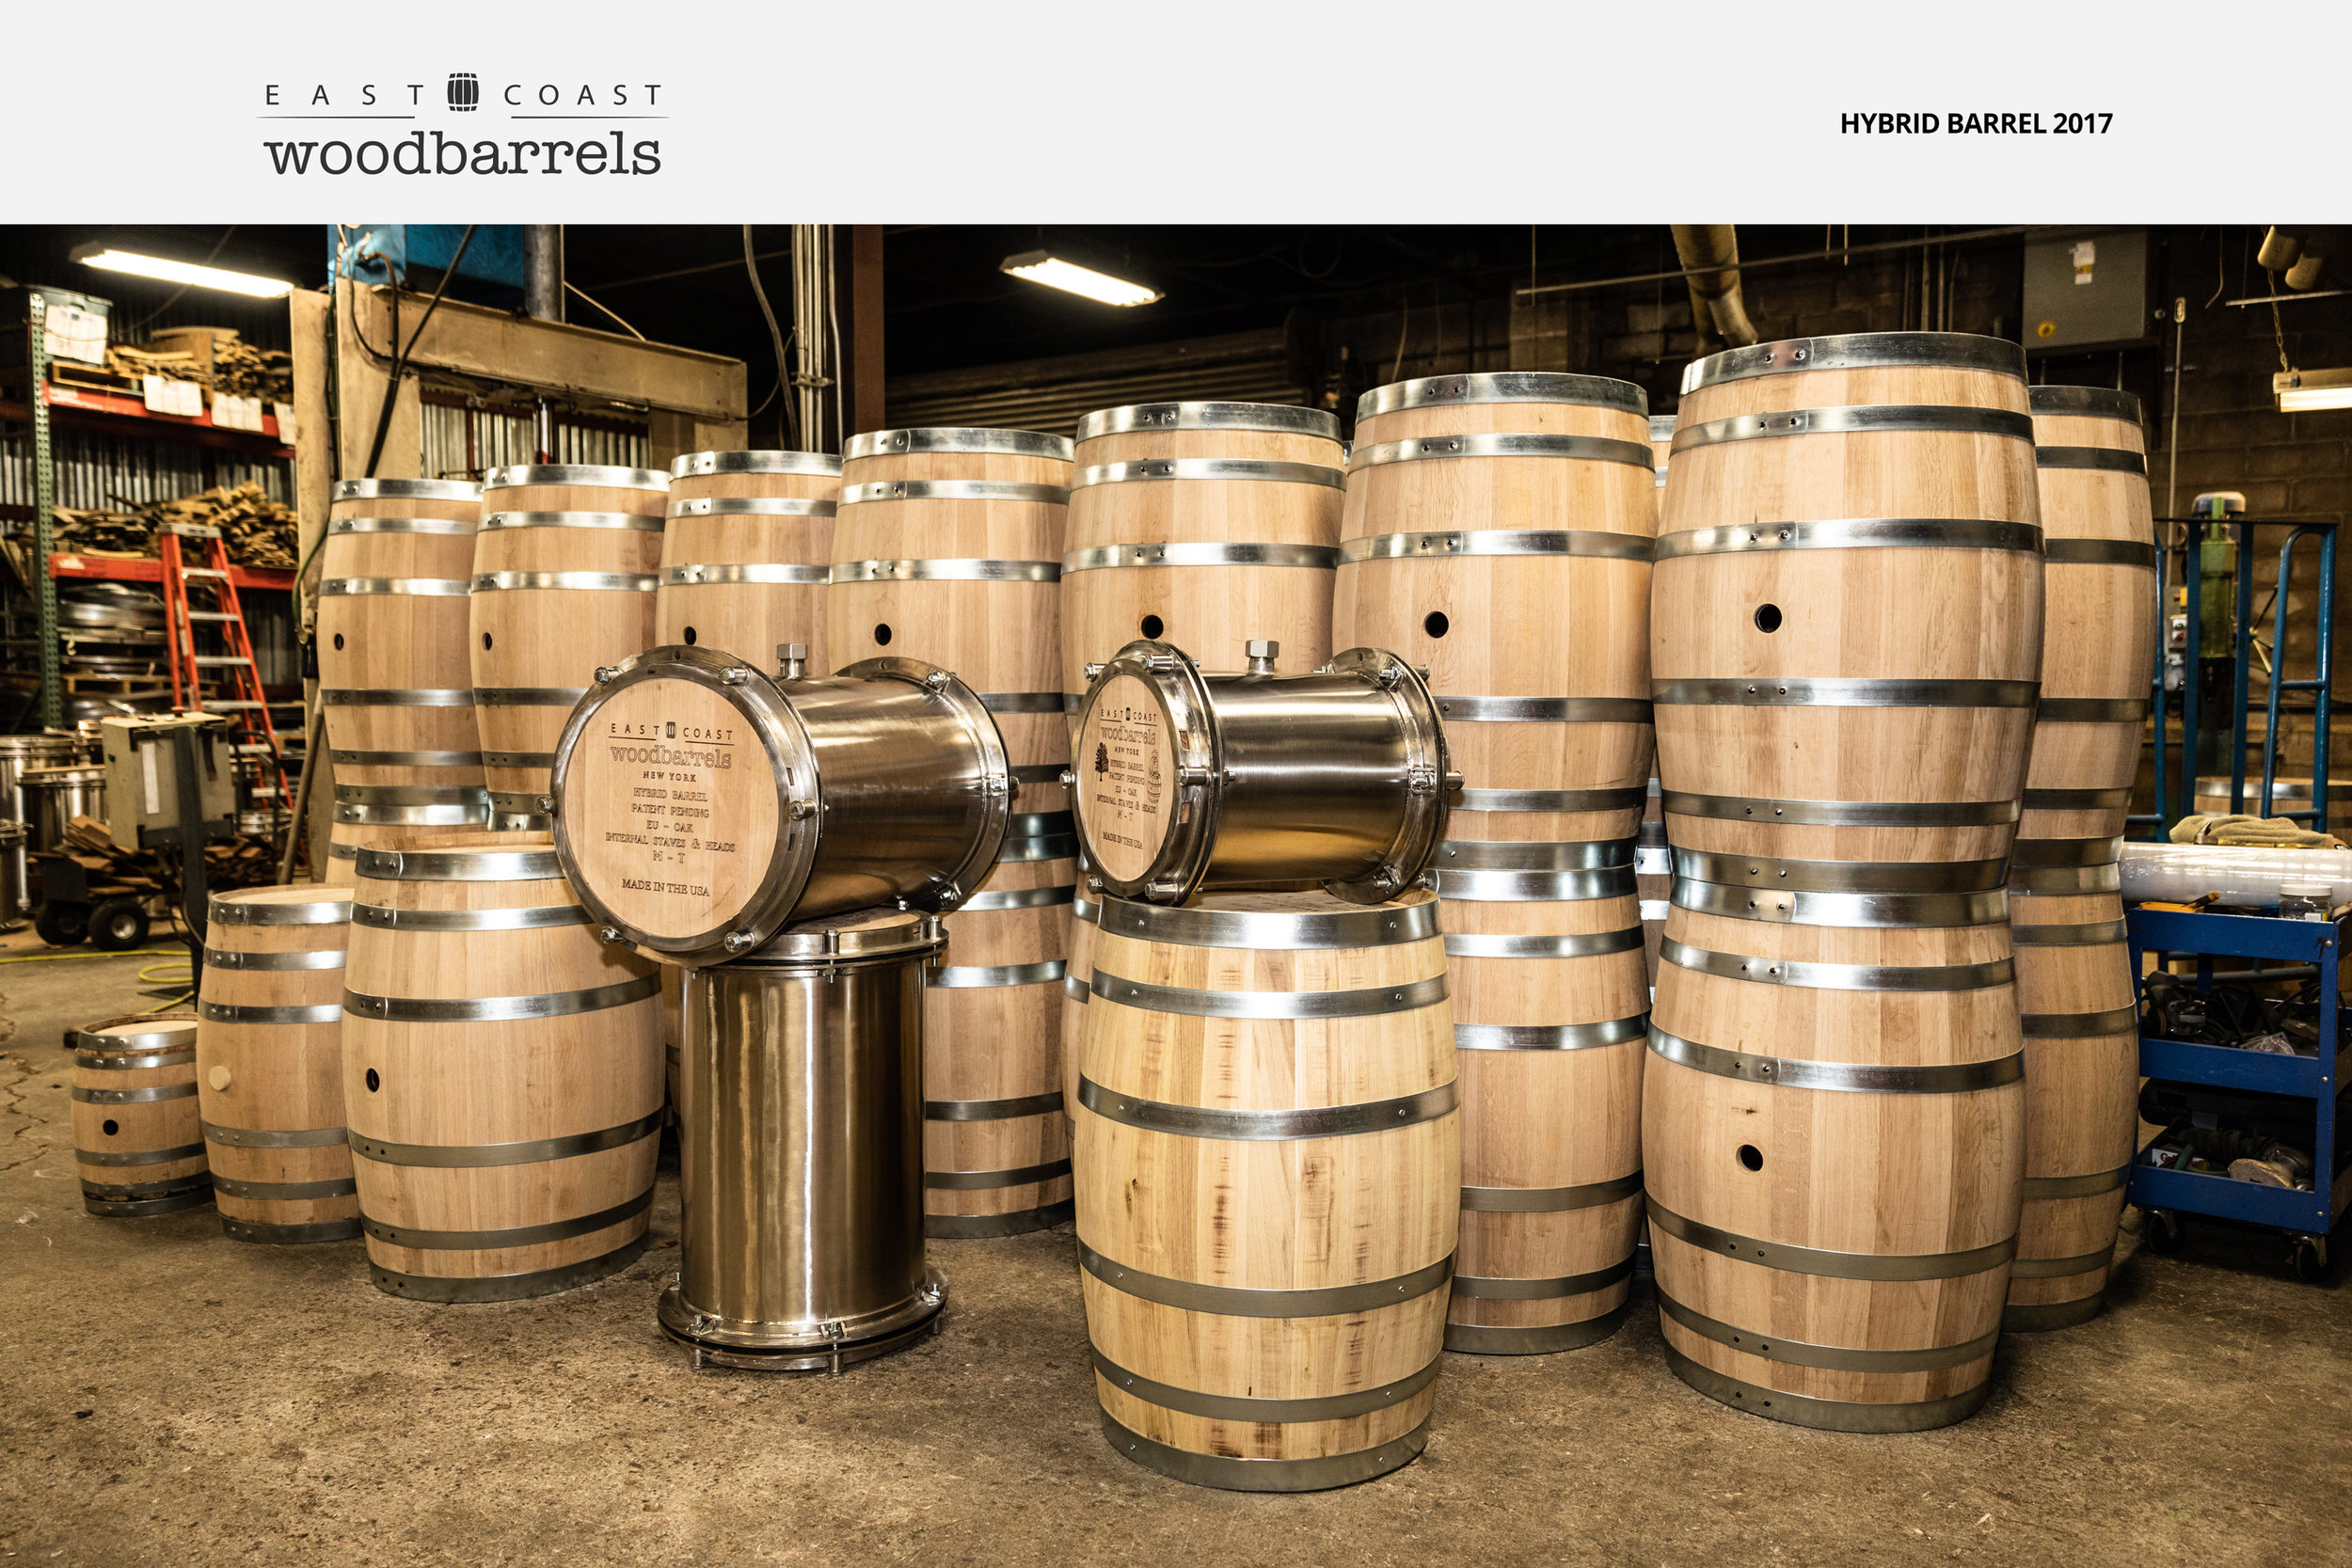 EAST-COAST-WOOD-BARRELS-WEB-IMAGES-3.jpg